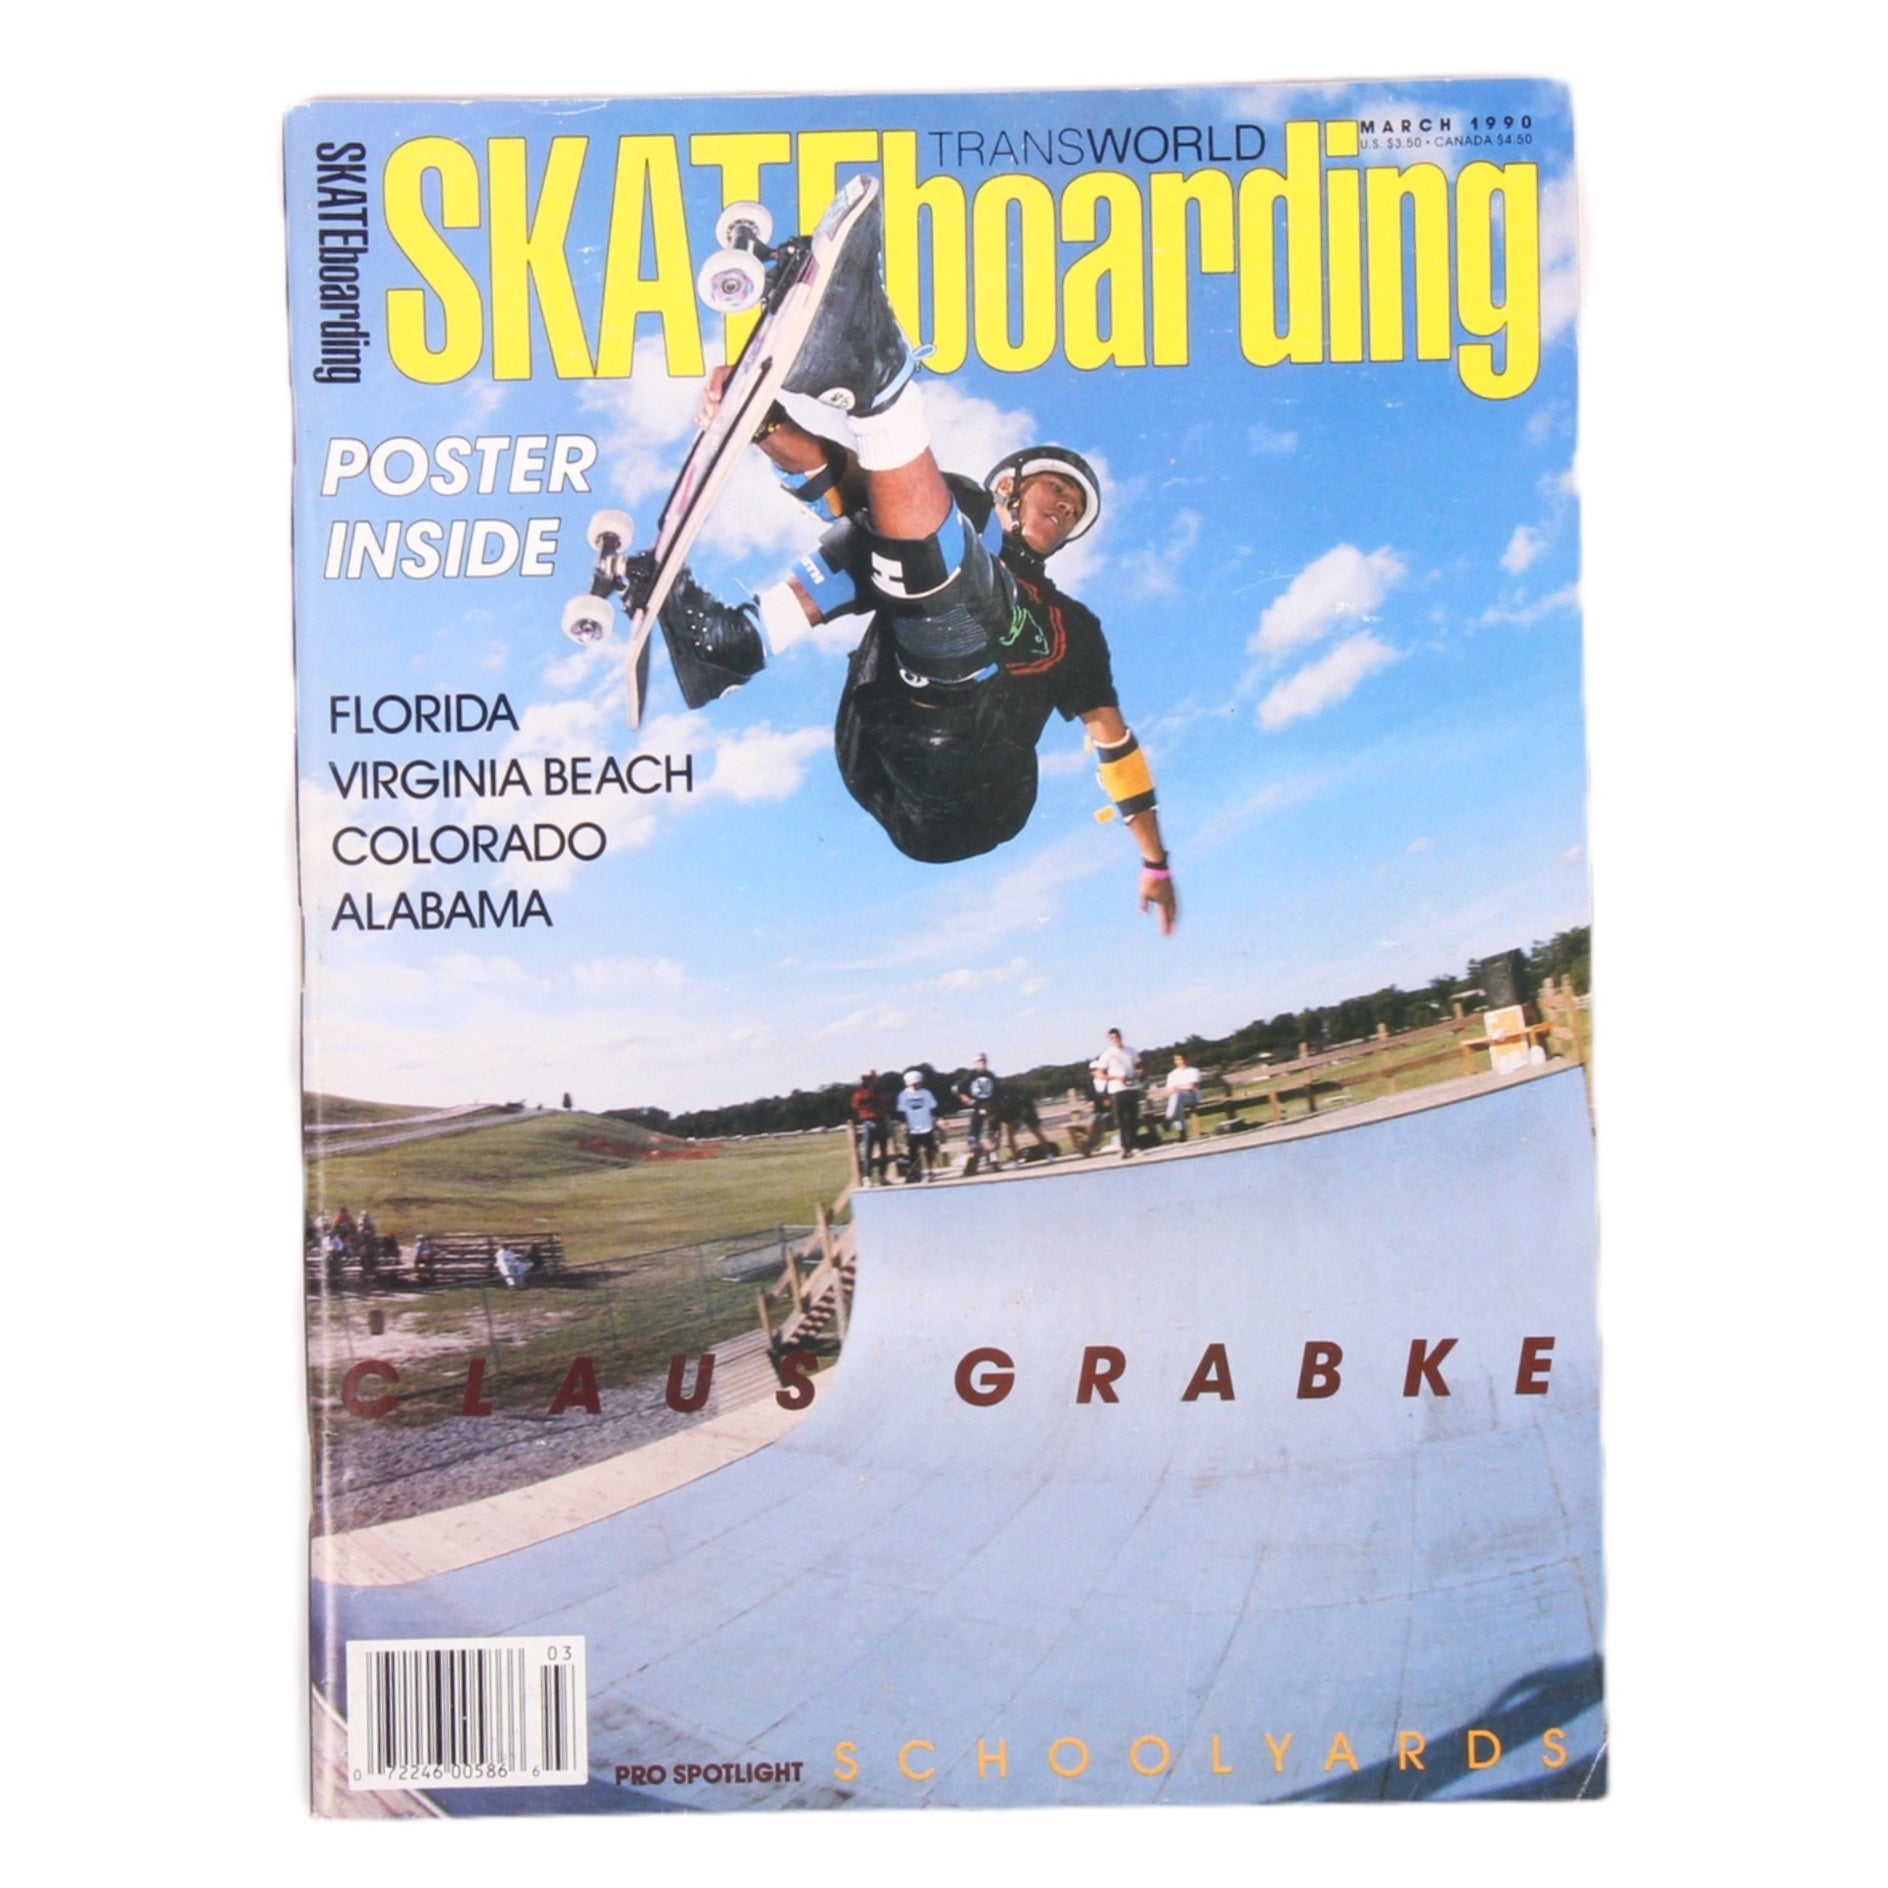 Overripe Transworld Skateboarding Magazine TWS March 1990